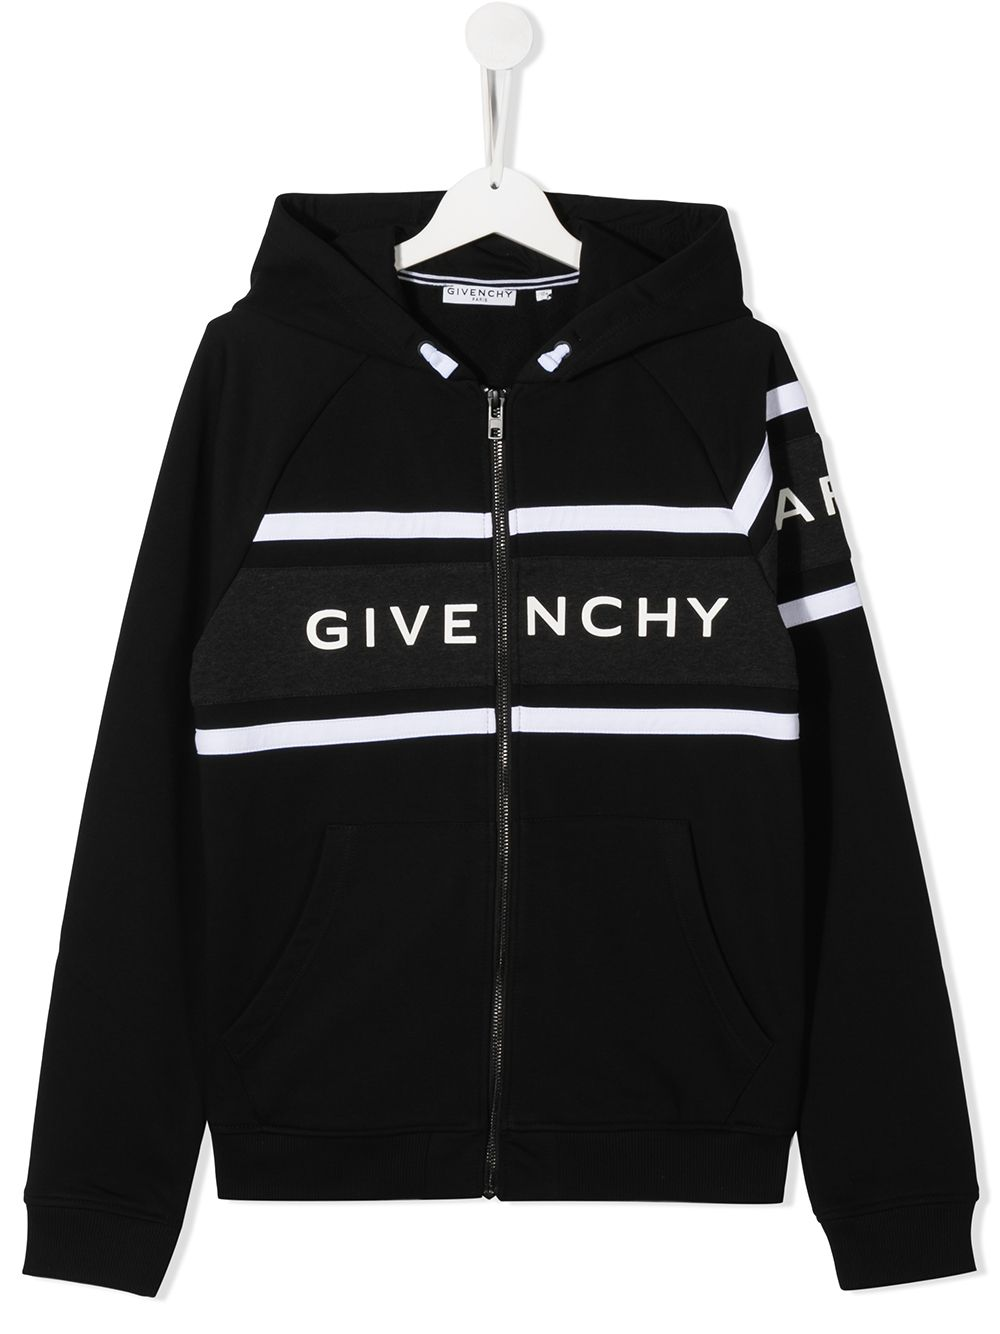 GIVENCHY KIDS Striped Logo Zipped Sweatshirt - Maison De Fashion